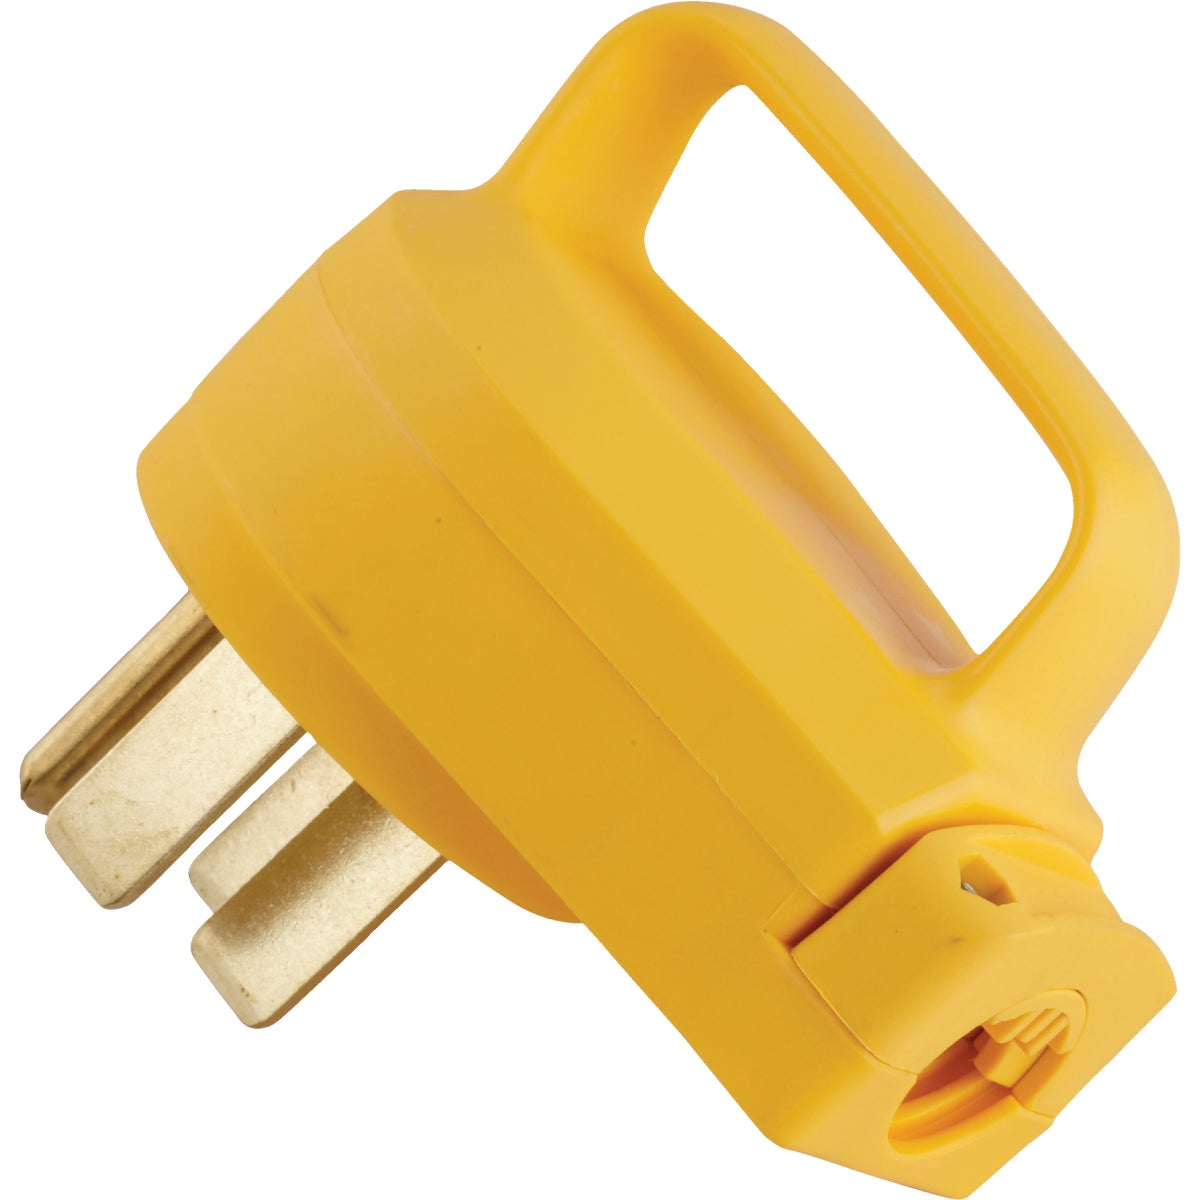 50 AMP POWER GRIP PLUG - 55255 by Camco Mfg.